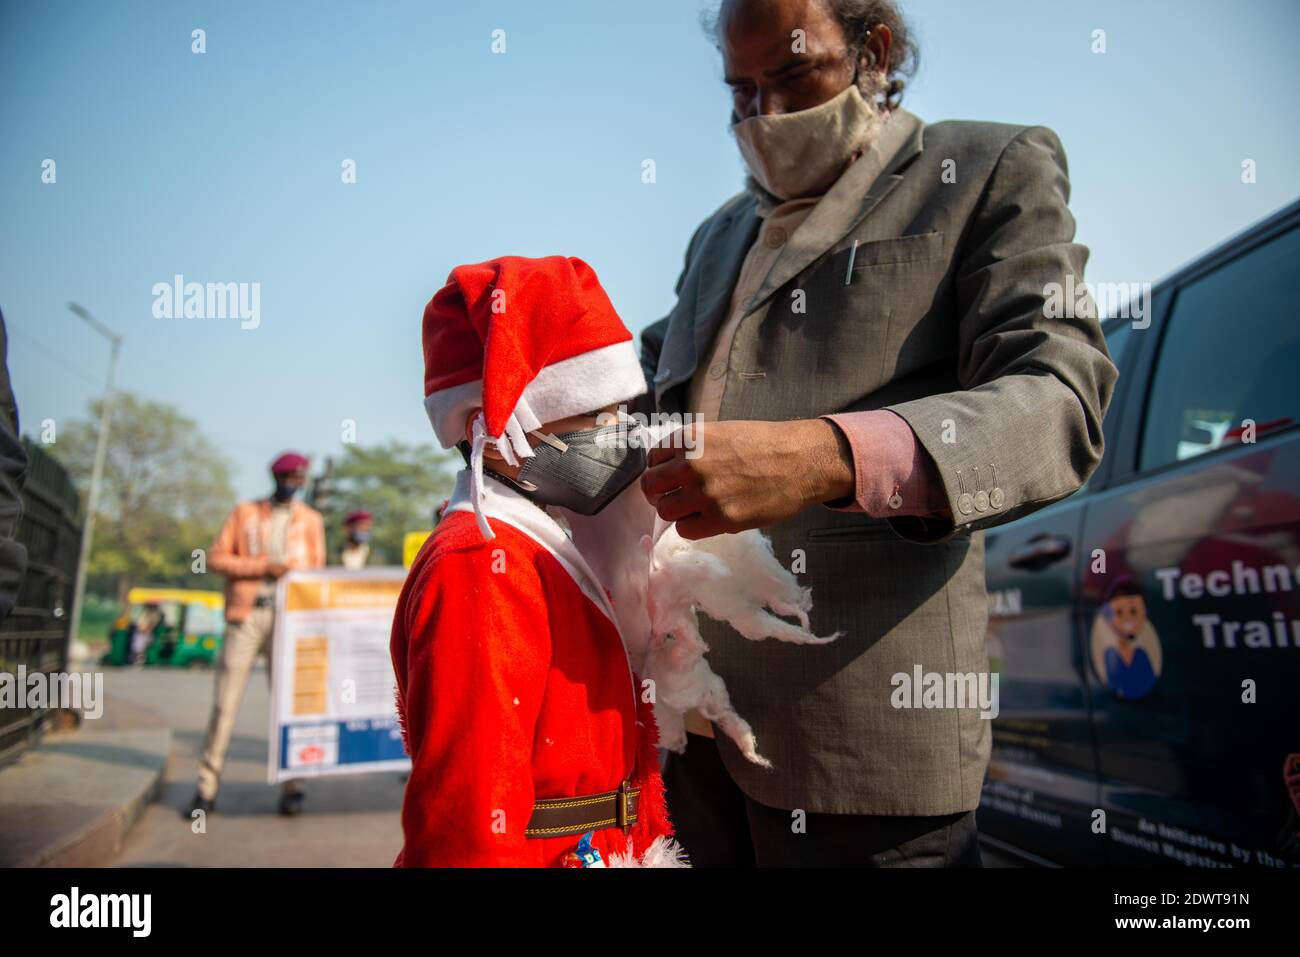 New Delhi, India. 23rd Dec, 2020. A man assisting a kid dressed up as Santa Claus to wear a face mask during the awareness campaign.The awareness campaign took place in Connaught Place, Delhi organized by the Office of District Magistrate to make people aware of Coronavirus pandemic precautionary measures. An artist and a boy attired like Santa Claus distributes masks among daily commuters. Credit: SOPA Images Limited/Alamy Live News Stock Photo